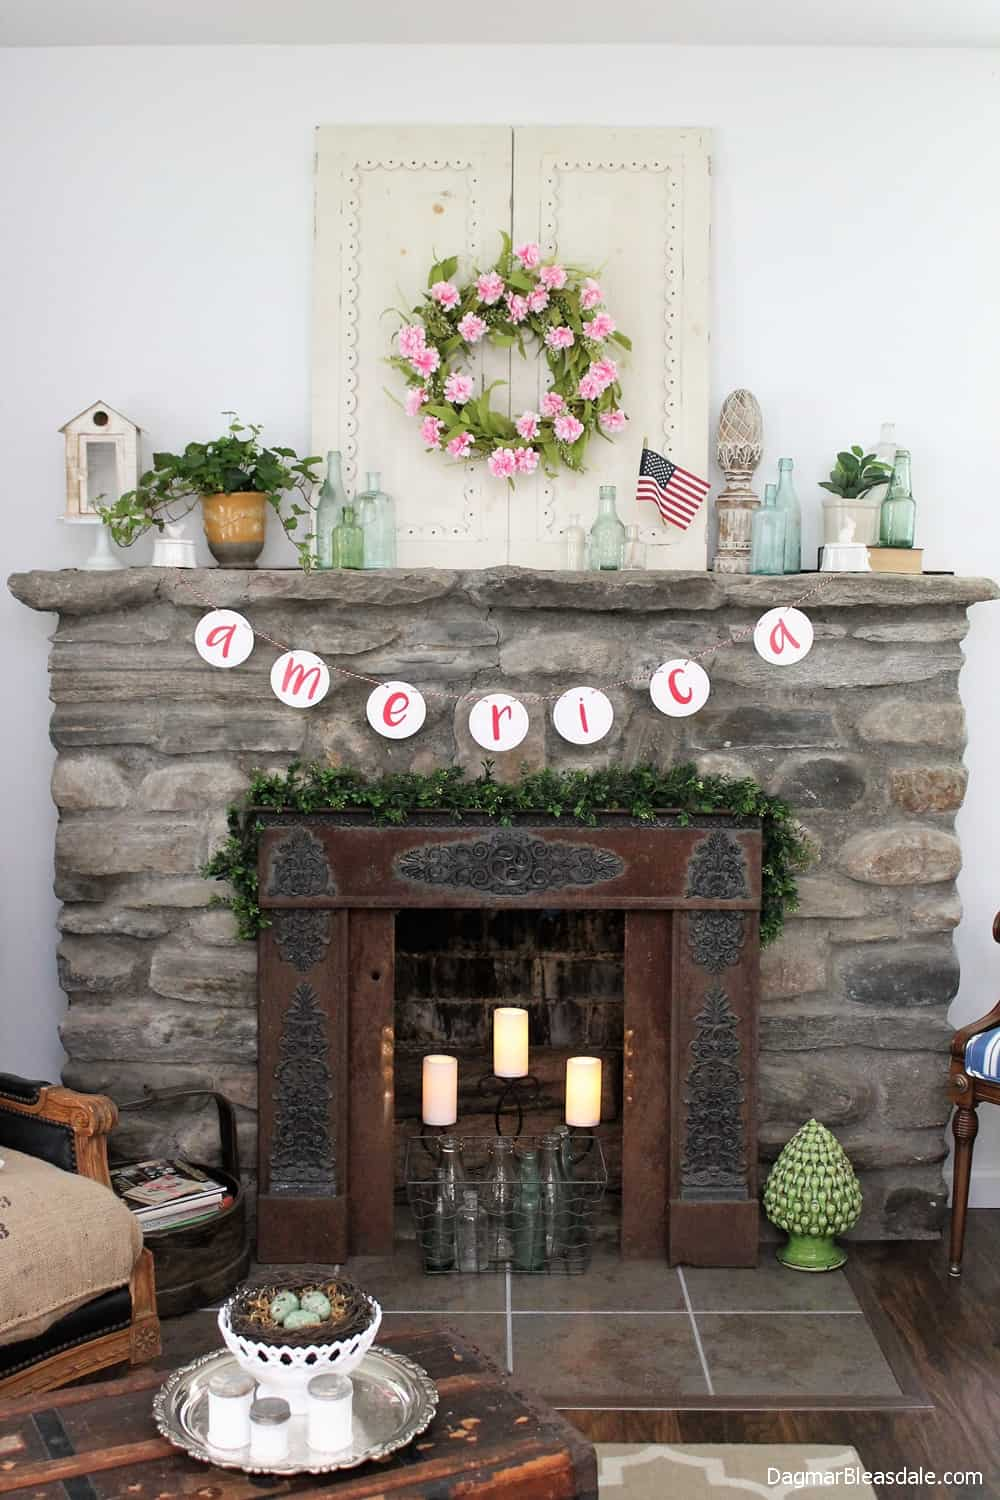 4th of July Decorations - DIY Flag Ideas and More